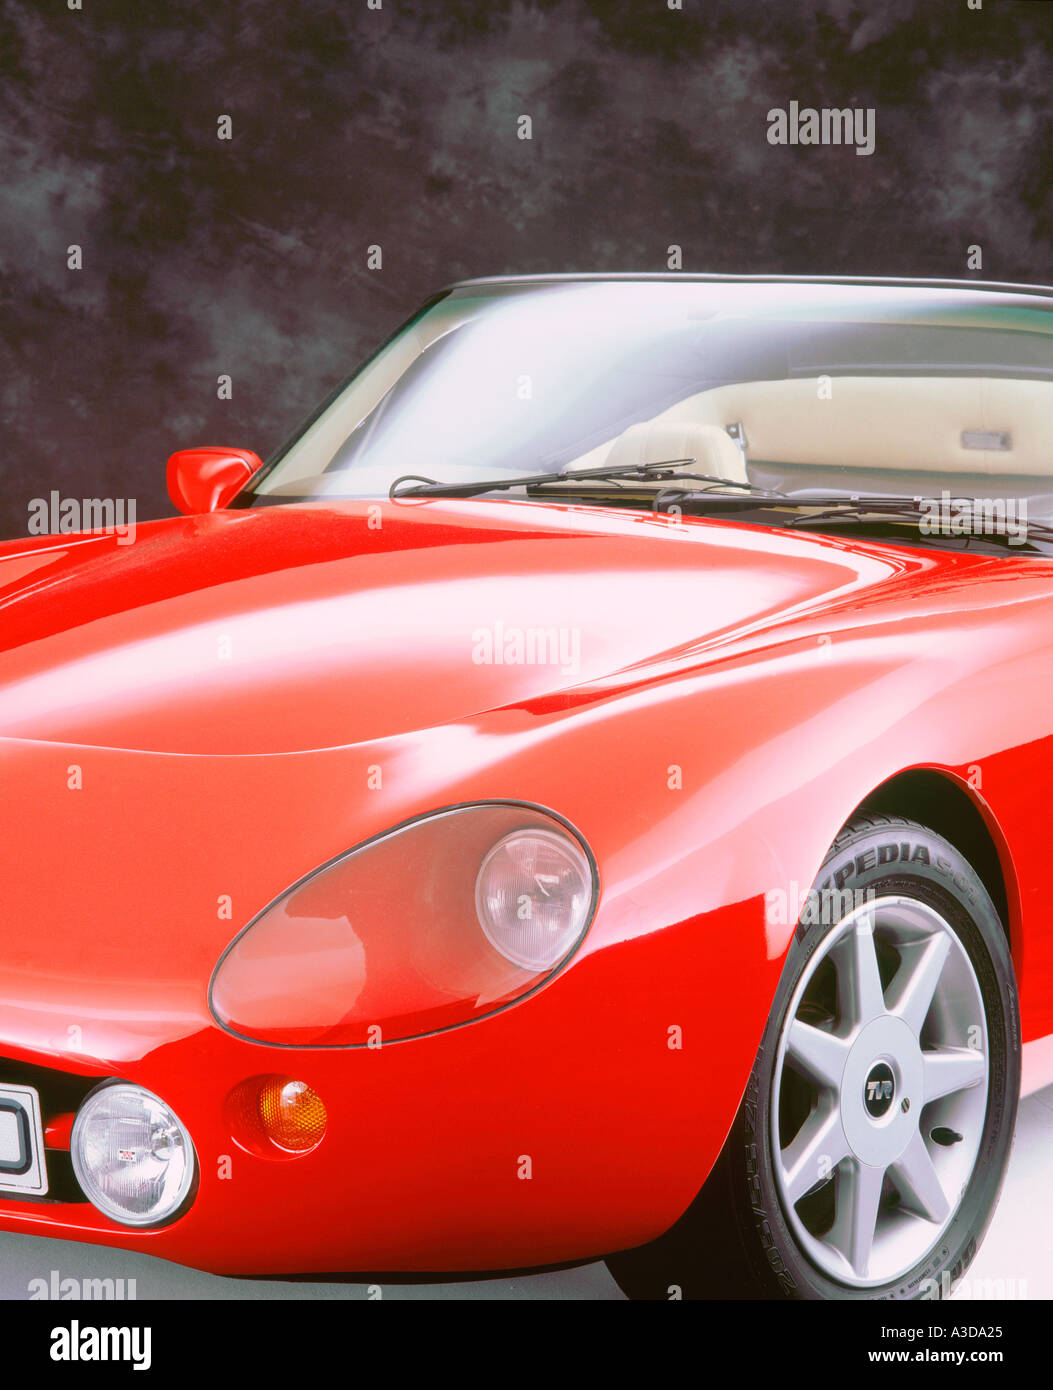 1995 TVR Griffith - Stock Image